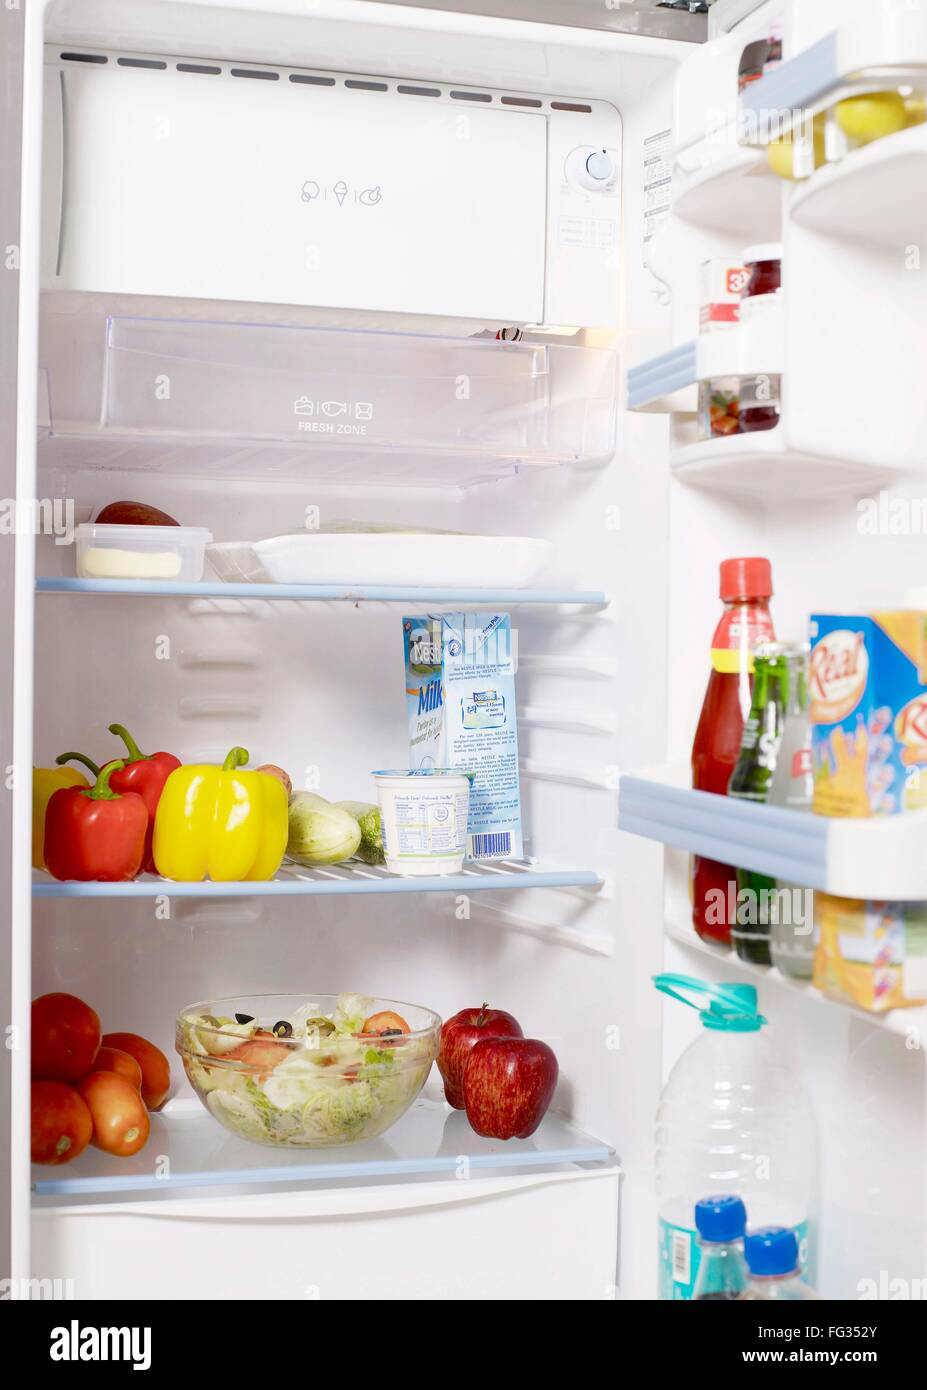 Various food ingredients and drinks kept in refrigerator - Stock Image